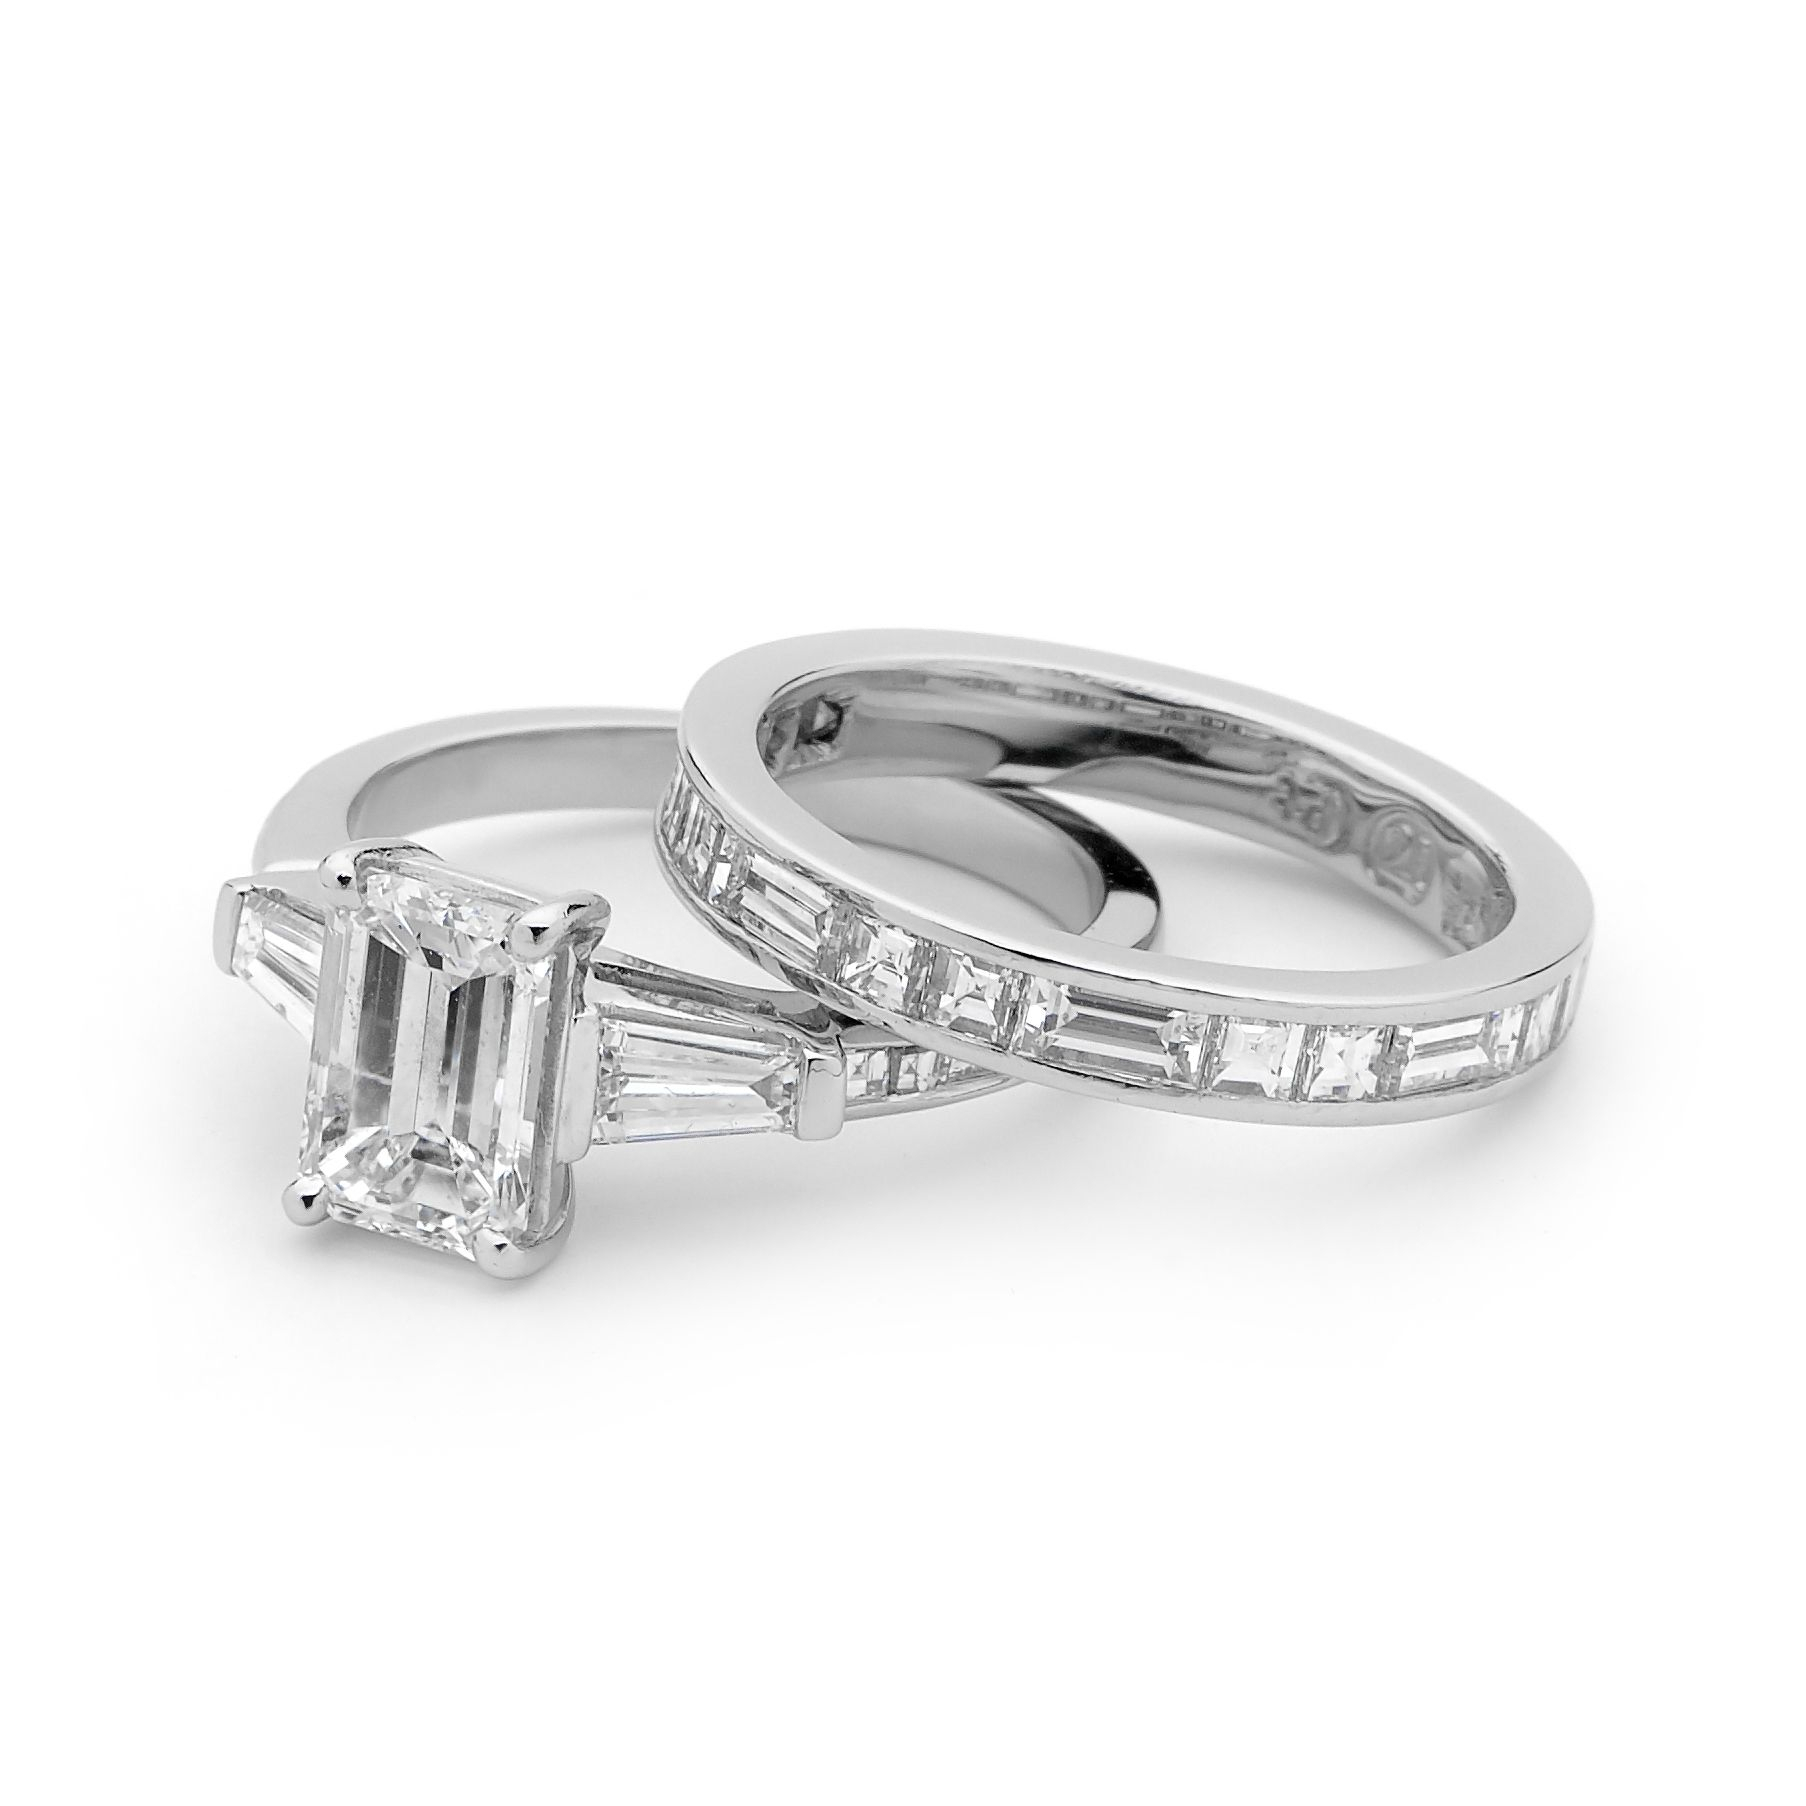 Emerald Cut Diamond Engagement Ring With Wedding Band To With Regard To Latest Bar Set Round Brilliant And Emerald Cut Diamond Wedding Bands (View 14 of 25)